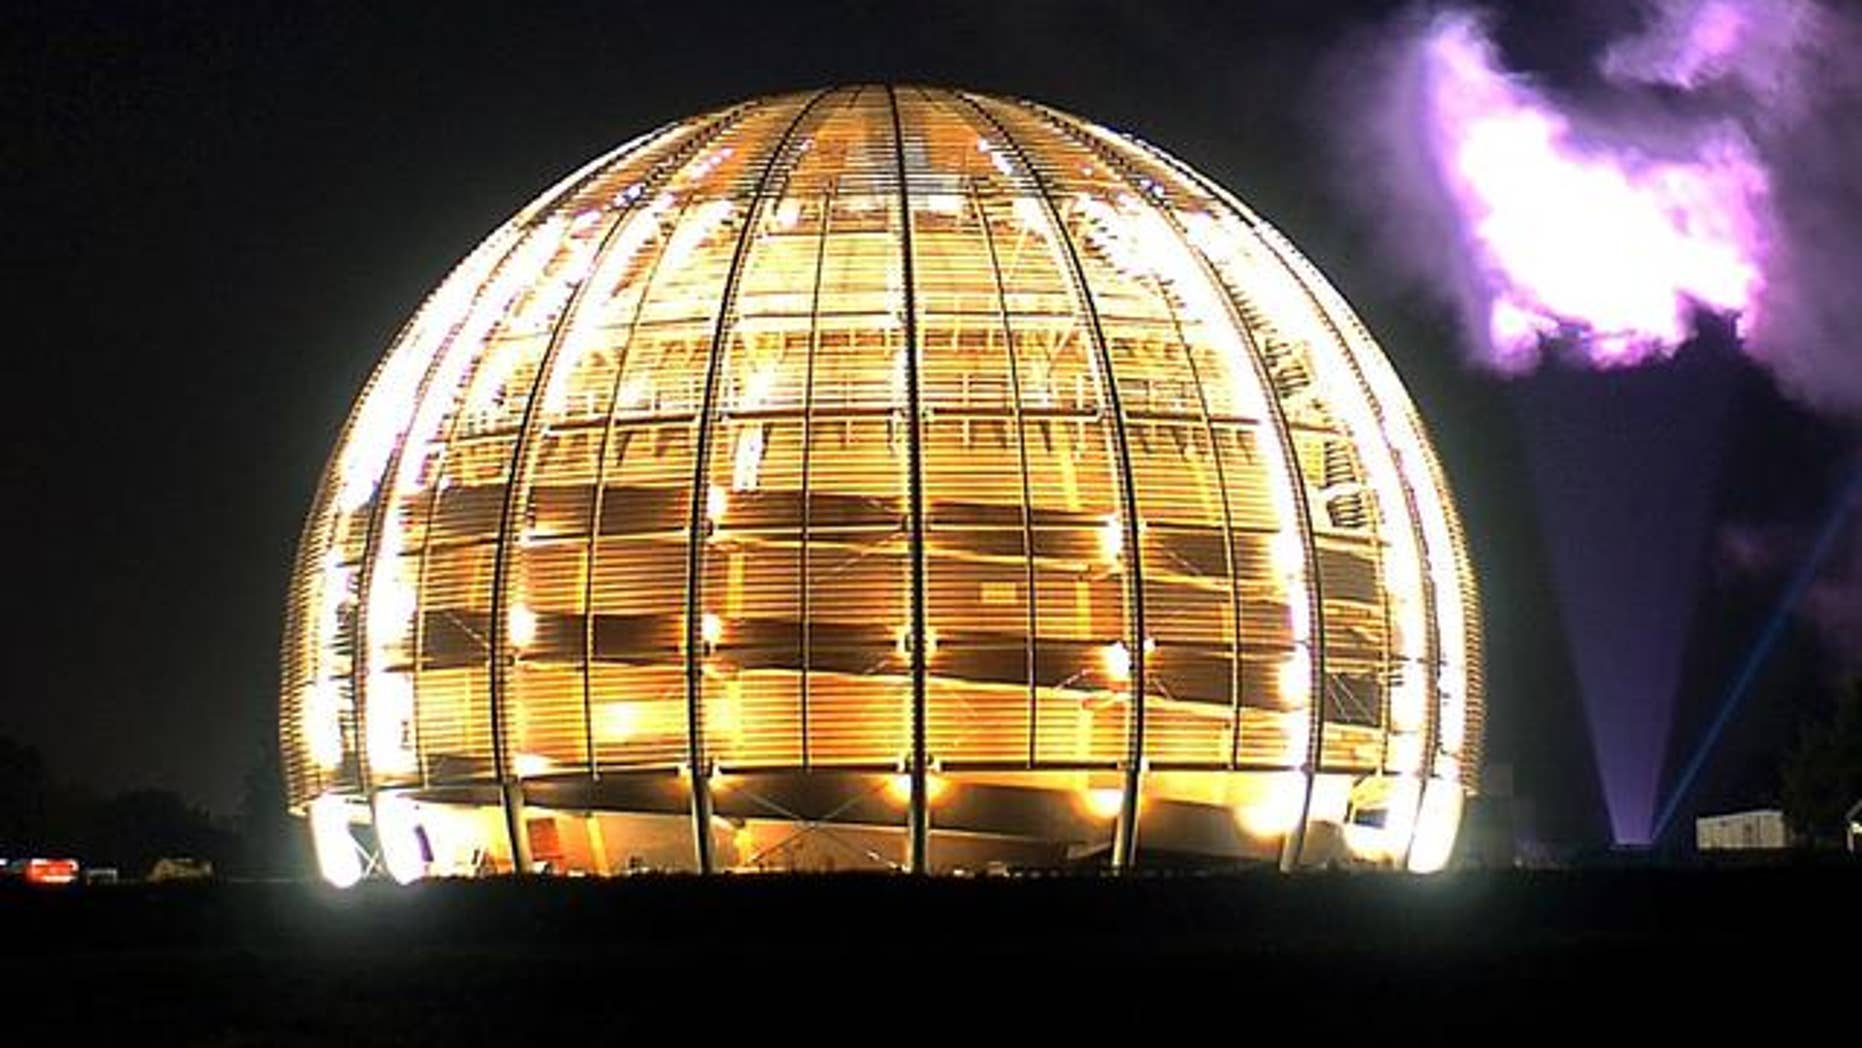 """Powerful """"skytracer"""" floodlights light up the 27-kilometre ring of the Large Hadron Collider of the CERN, European Organization for Nuclear Research, in Geneva, Switzerland."""